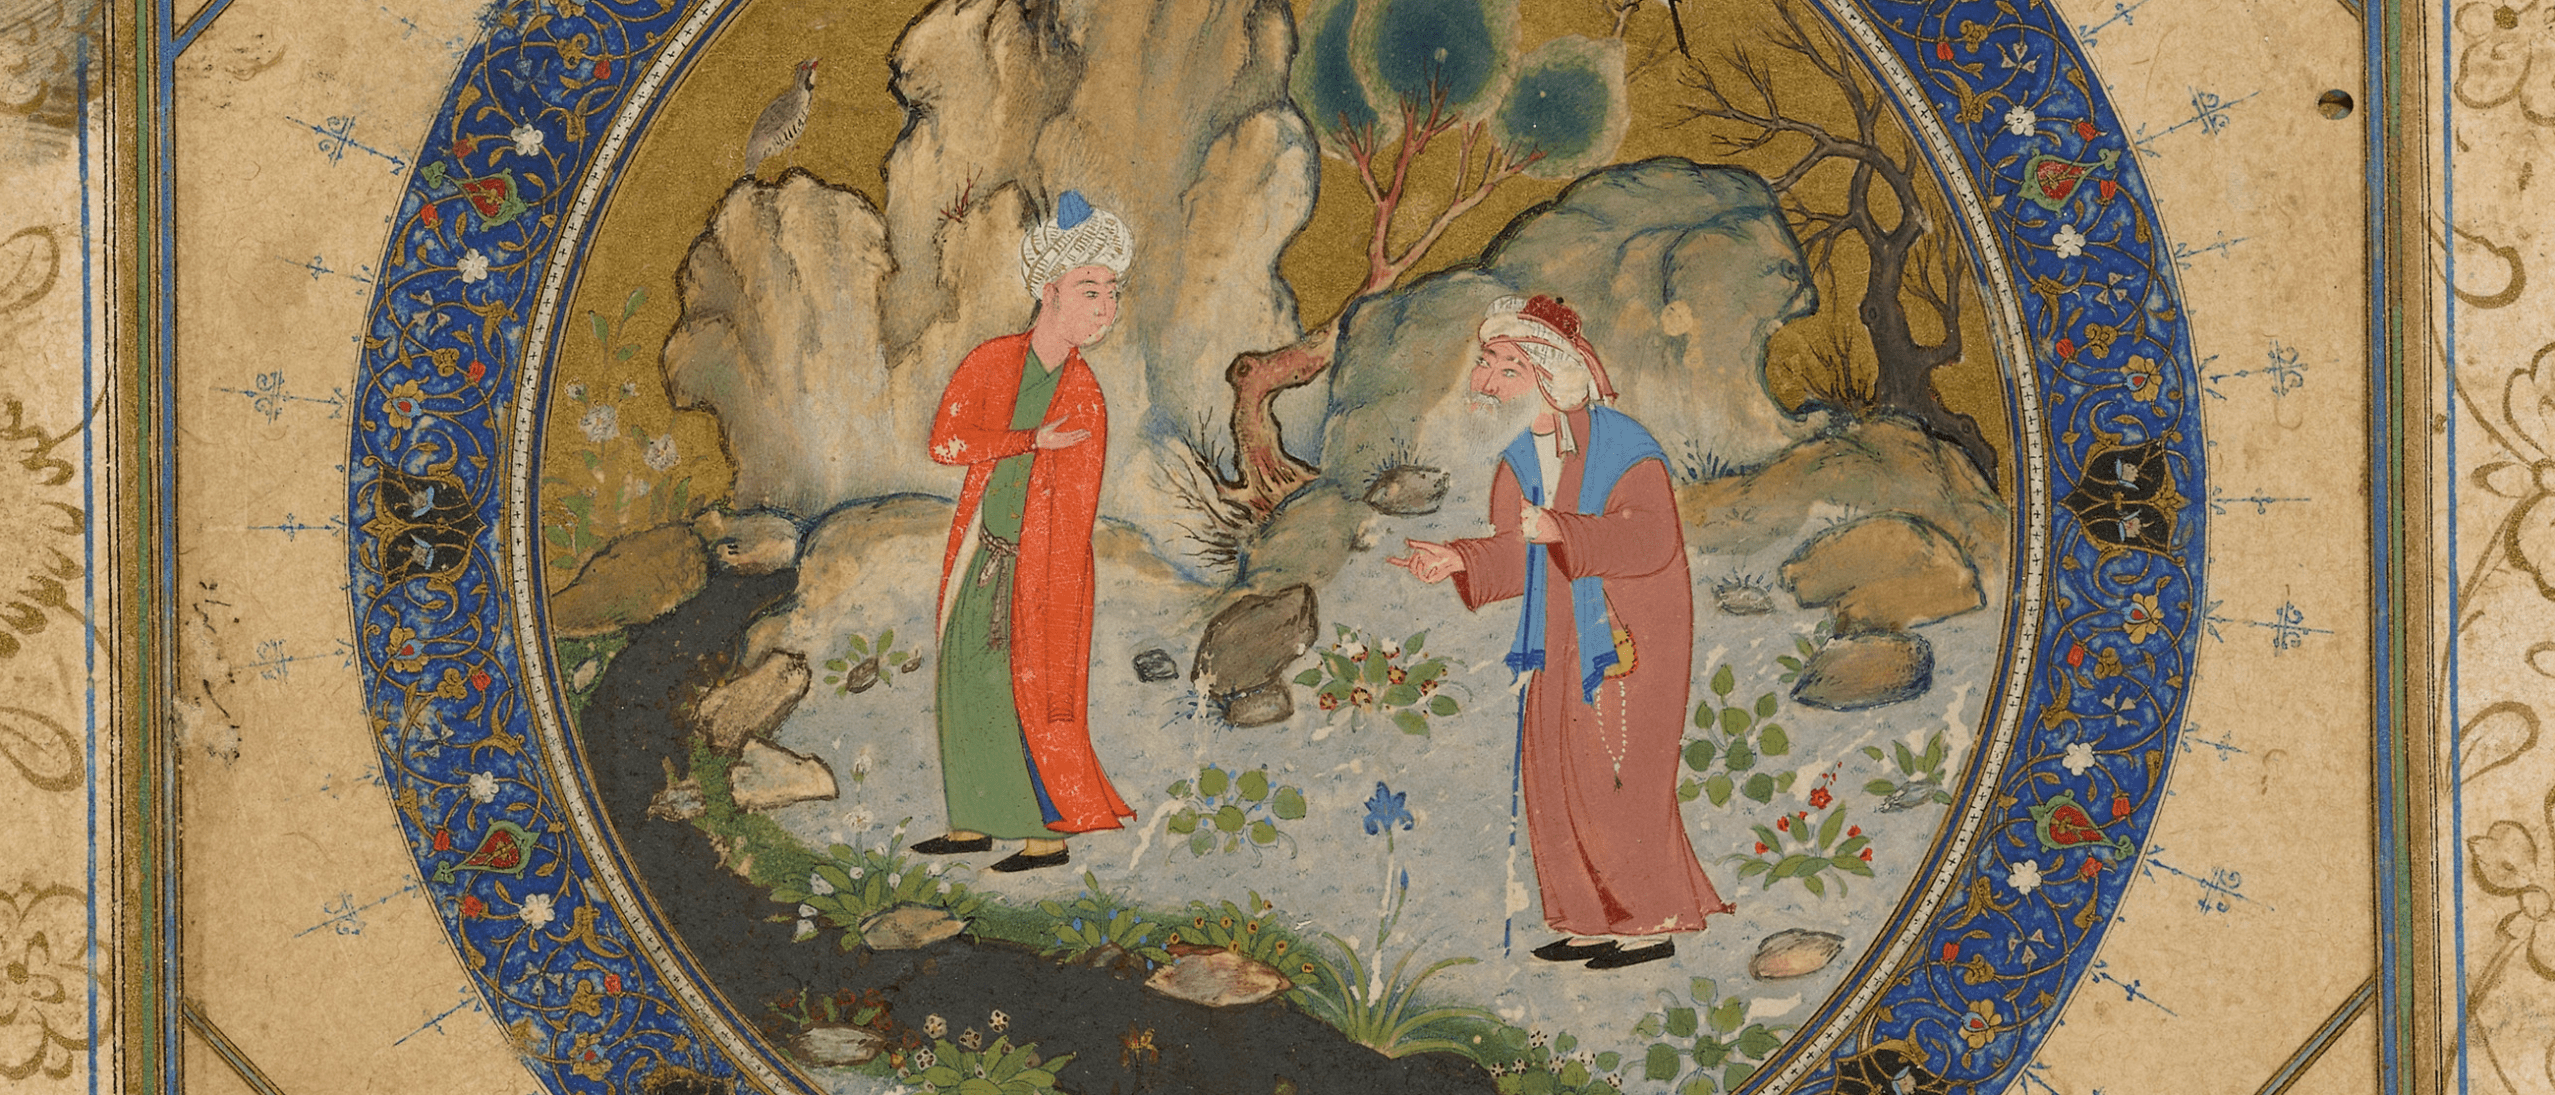 An old man and a youth in a mountain landscape.